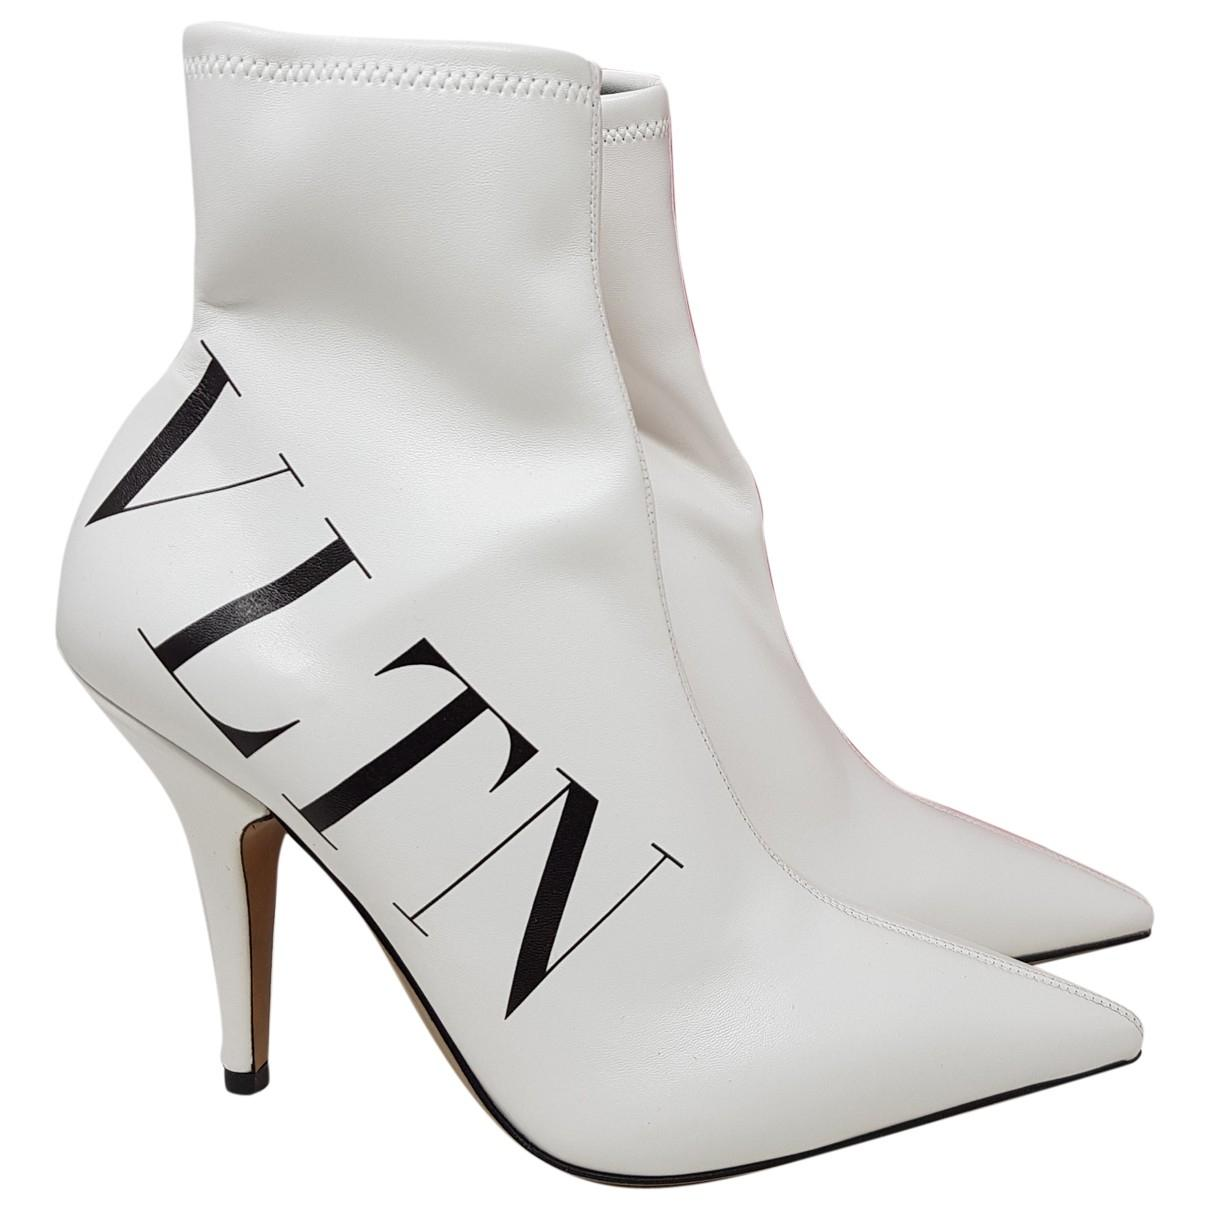 8c6ff8e02944d Valentino. Women s Pre-owned Vltn White Polyester Ankle Boots. £473 From Vestiaire  Collective